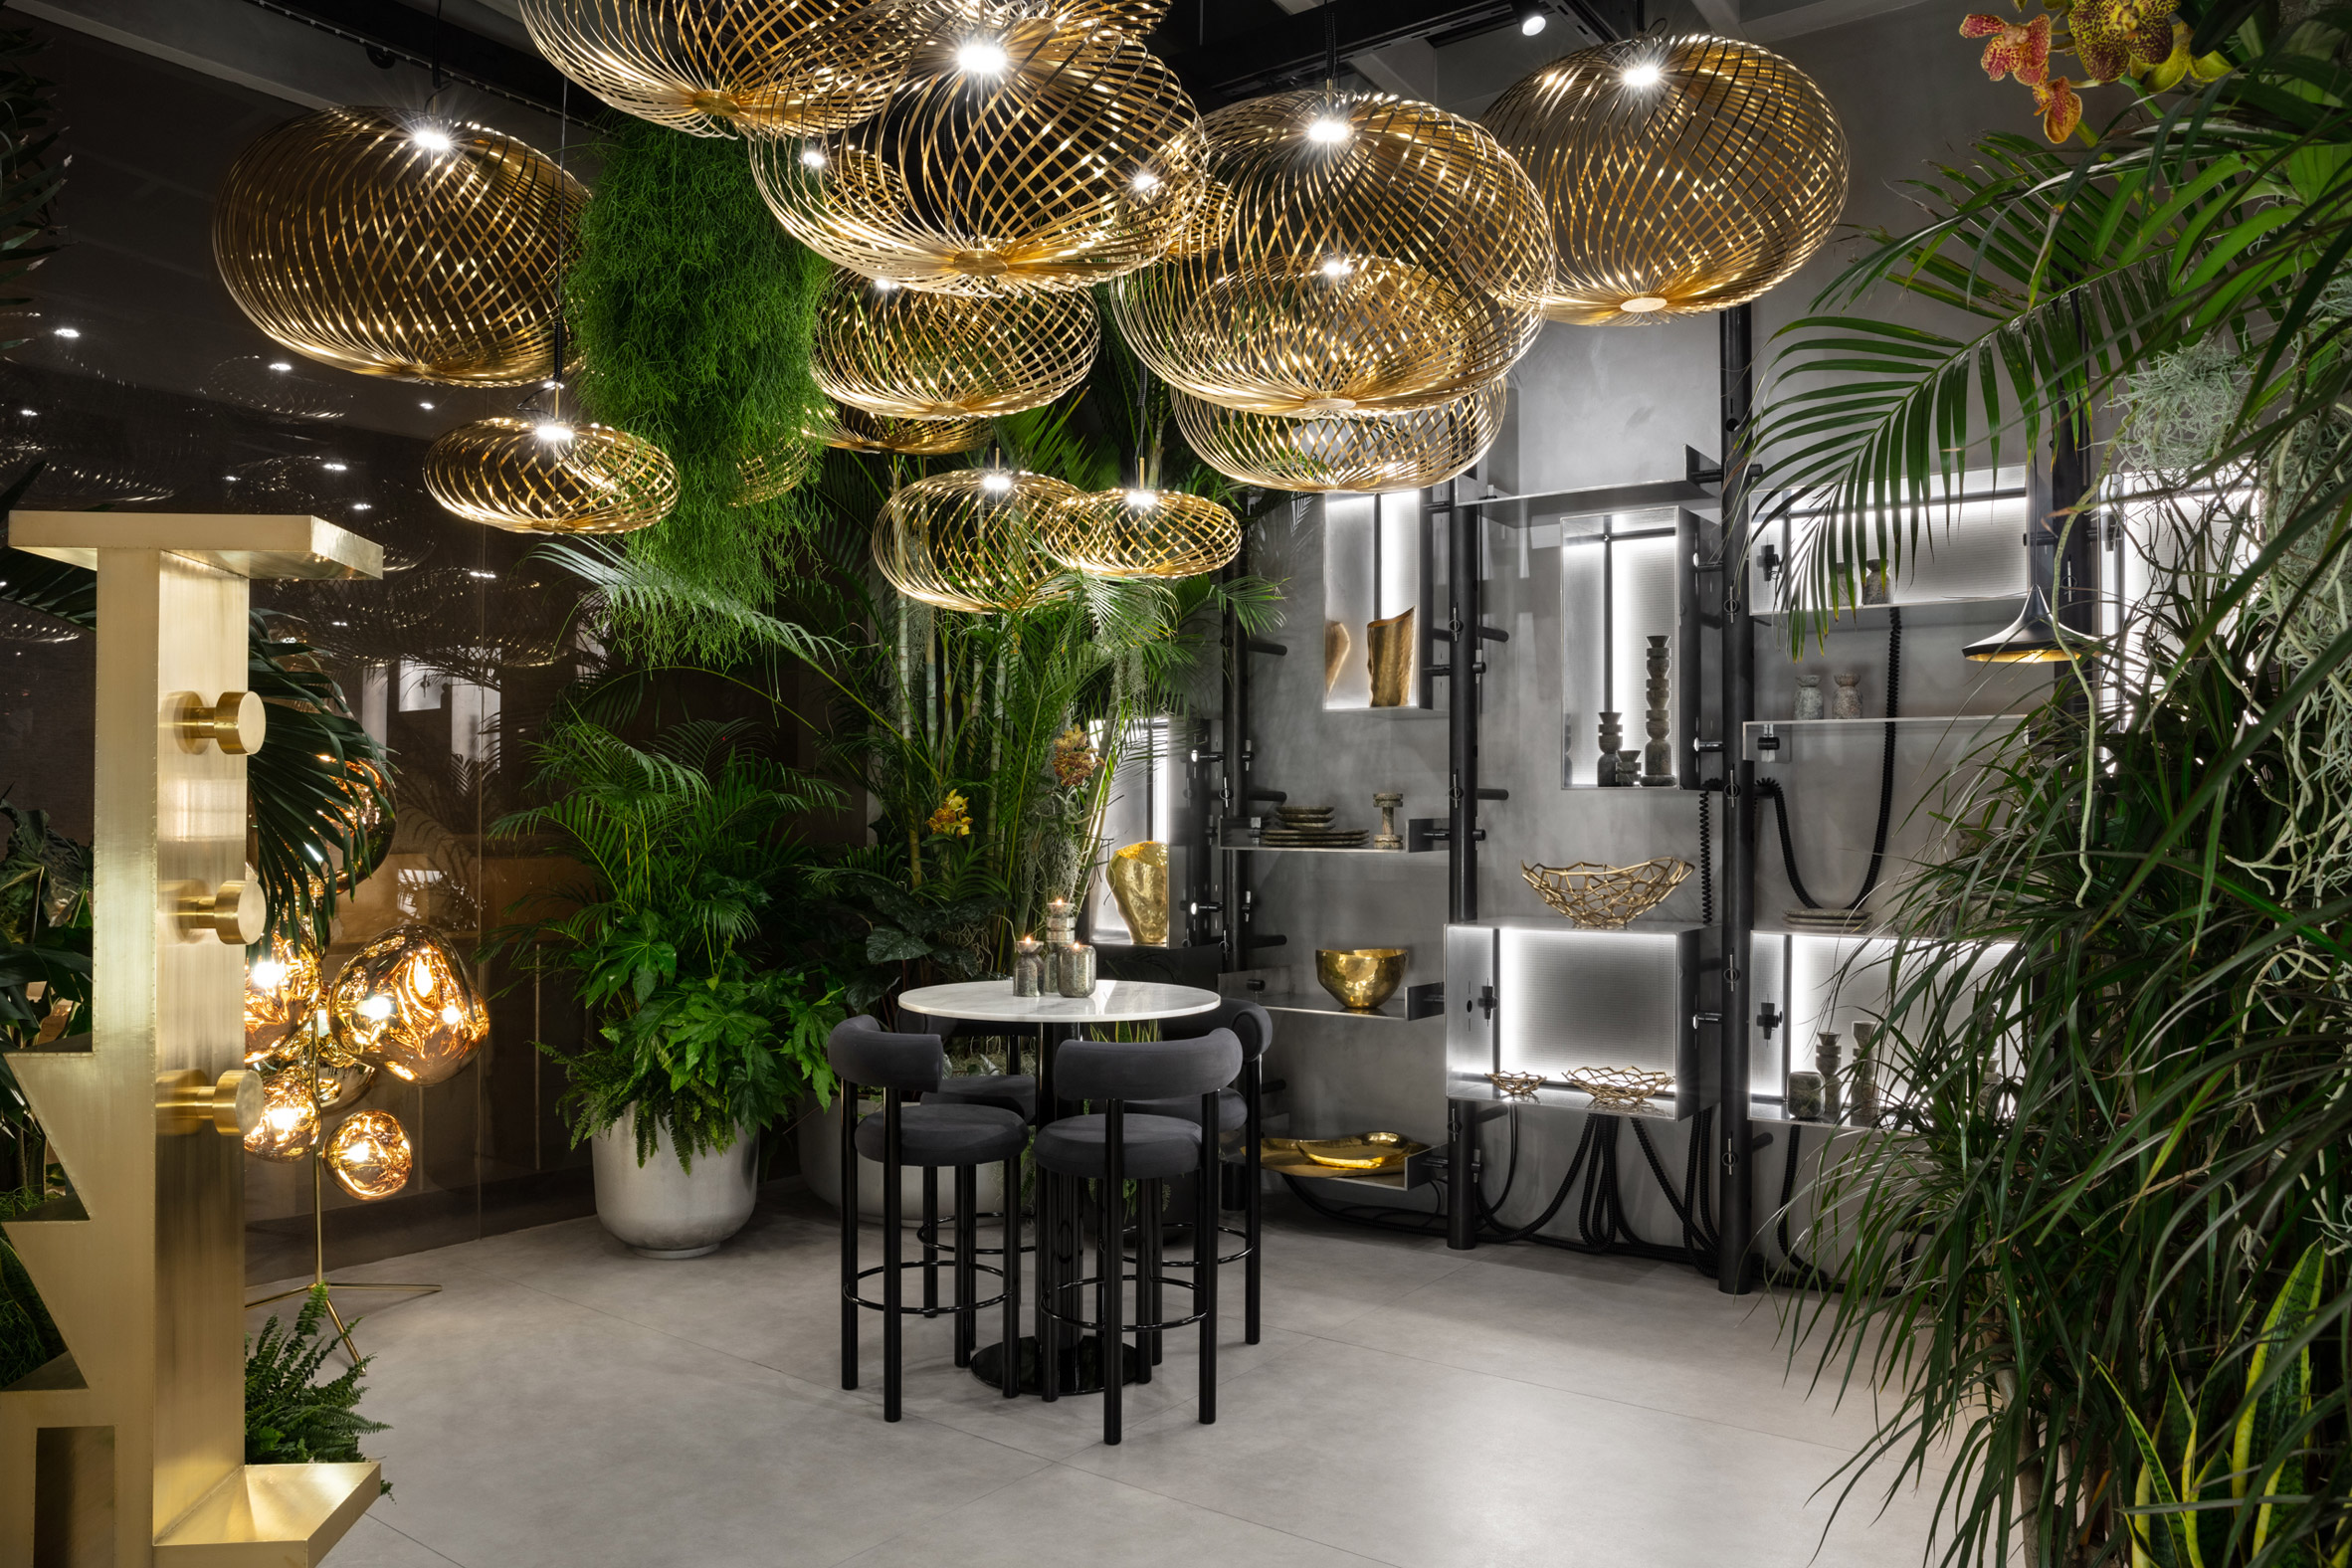 You can buy everything at Tom Dixon's new restaurant